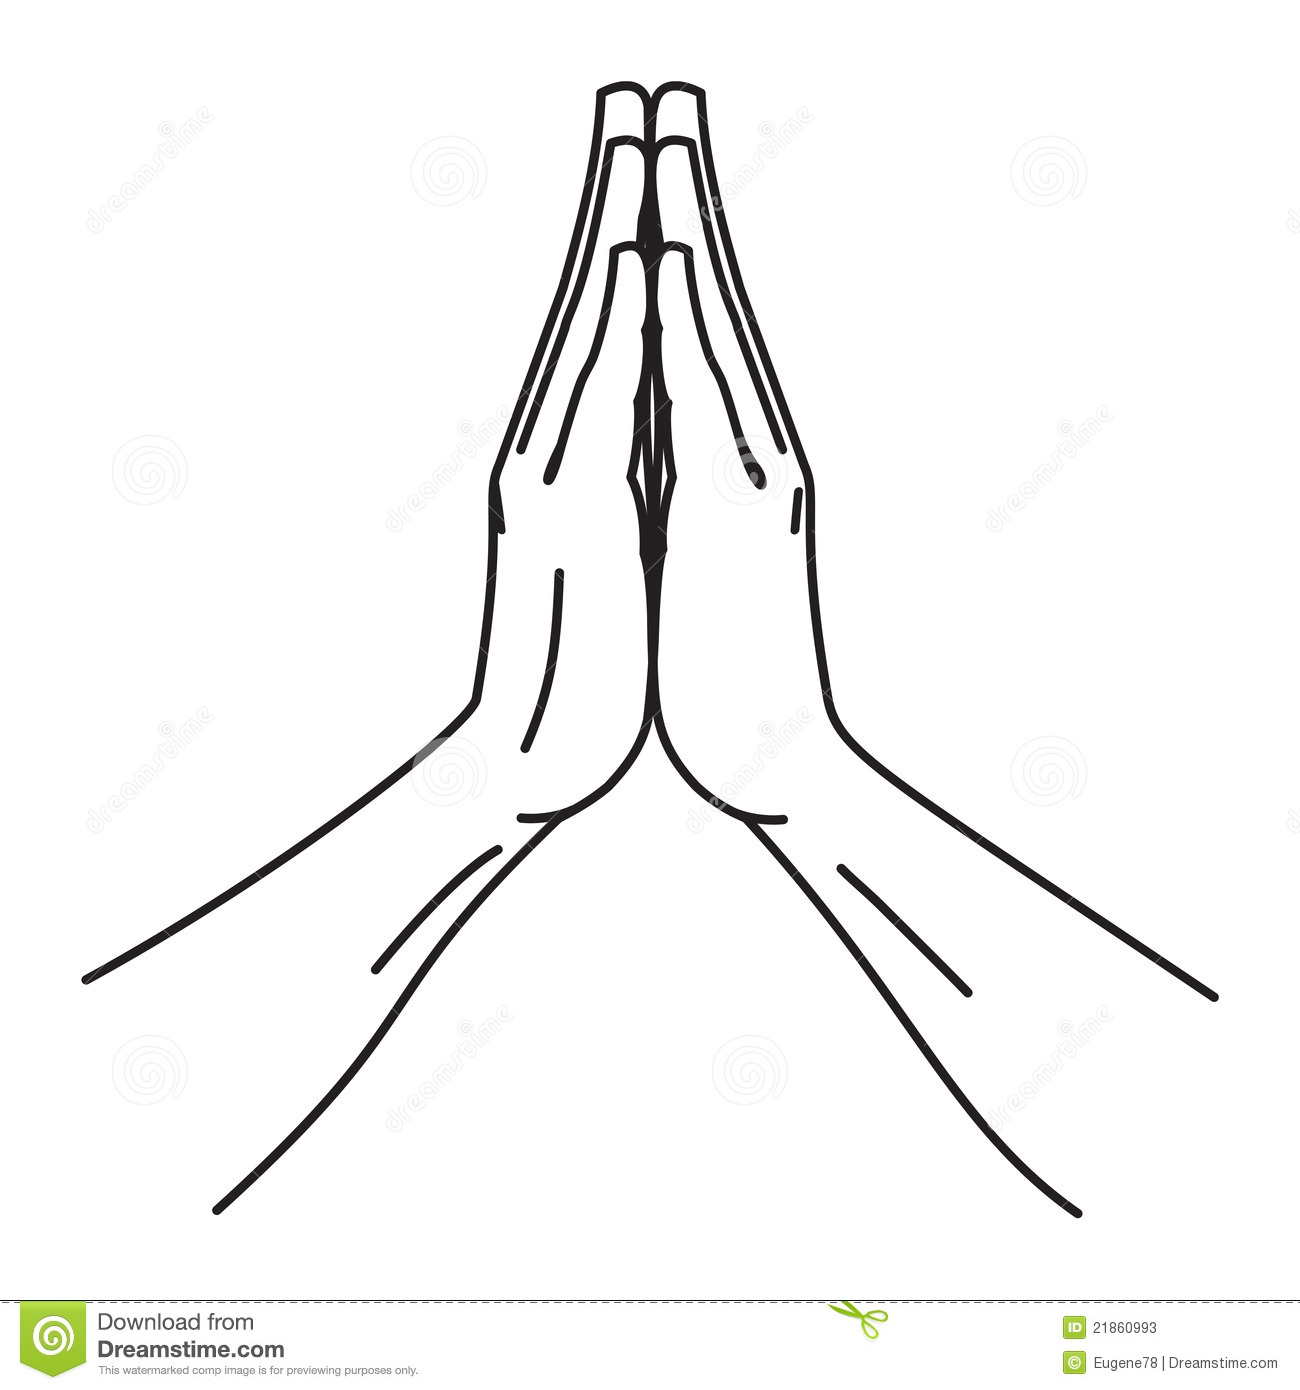 folded hands stock photos image 21860993 clip art praying hands child's clip art praying hands and cross